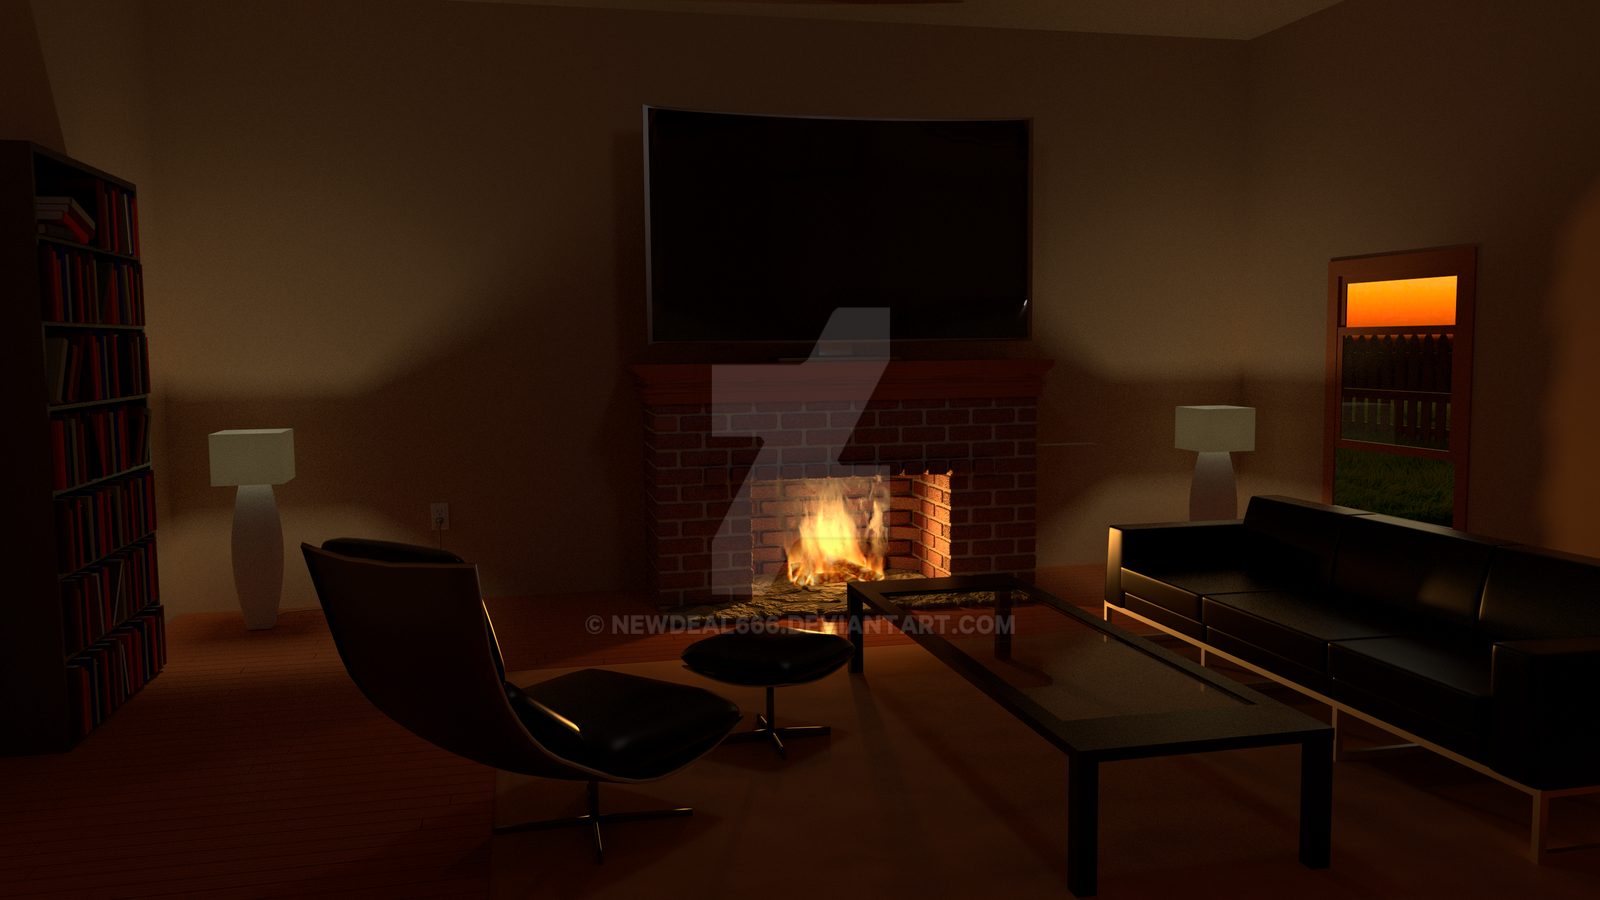 Living Room by newdeal666